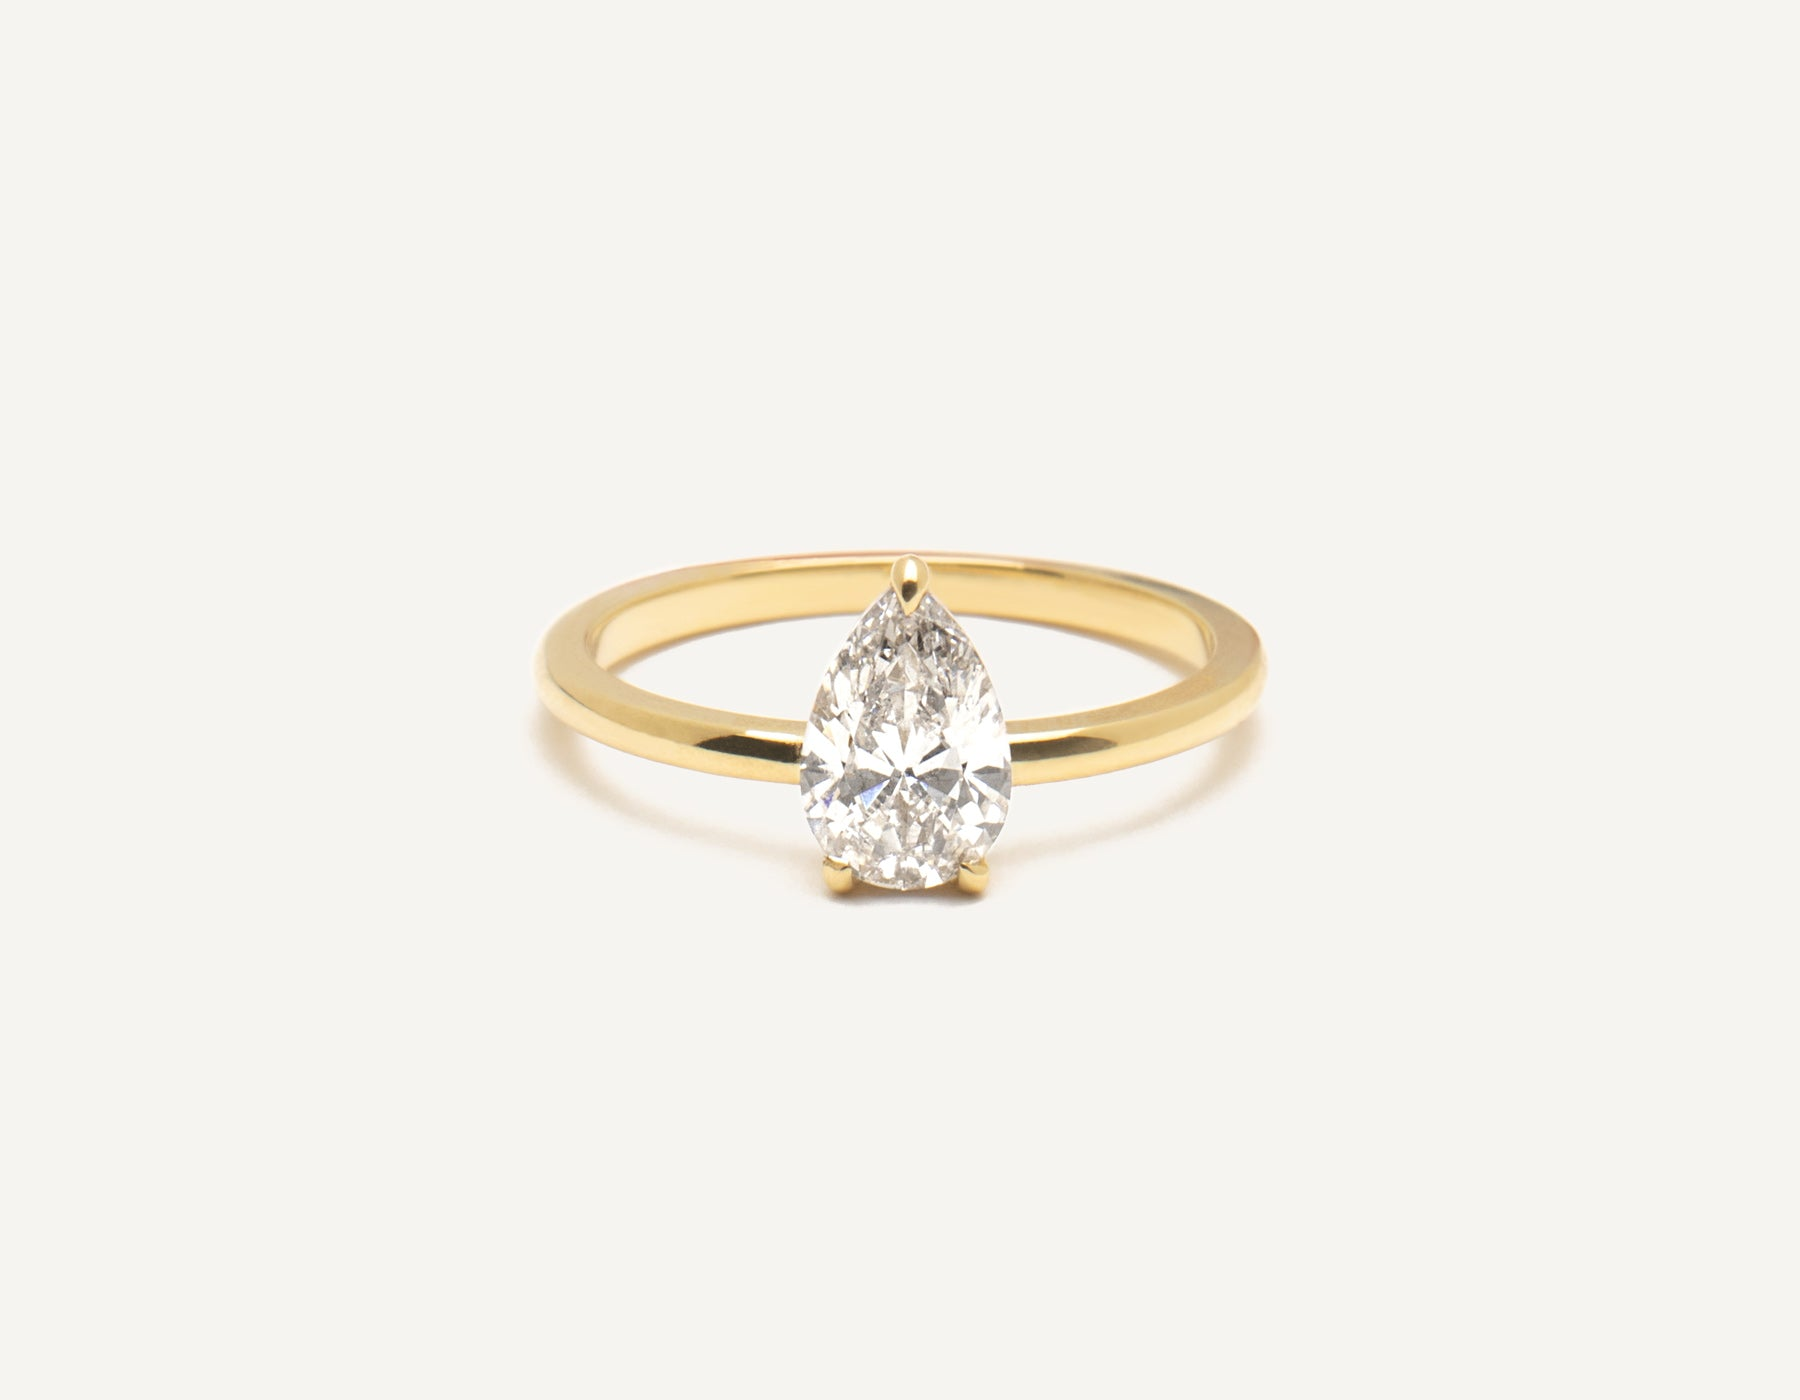 Minimalist 18k solid yellow gold The pear engagement ring 1 ct diamond Vrai and Oro